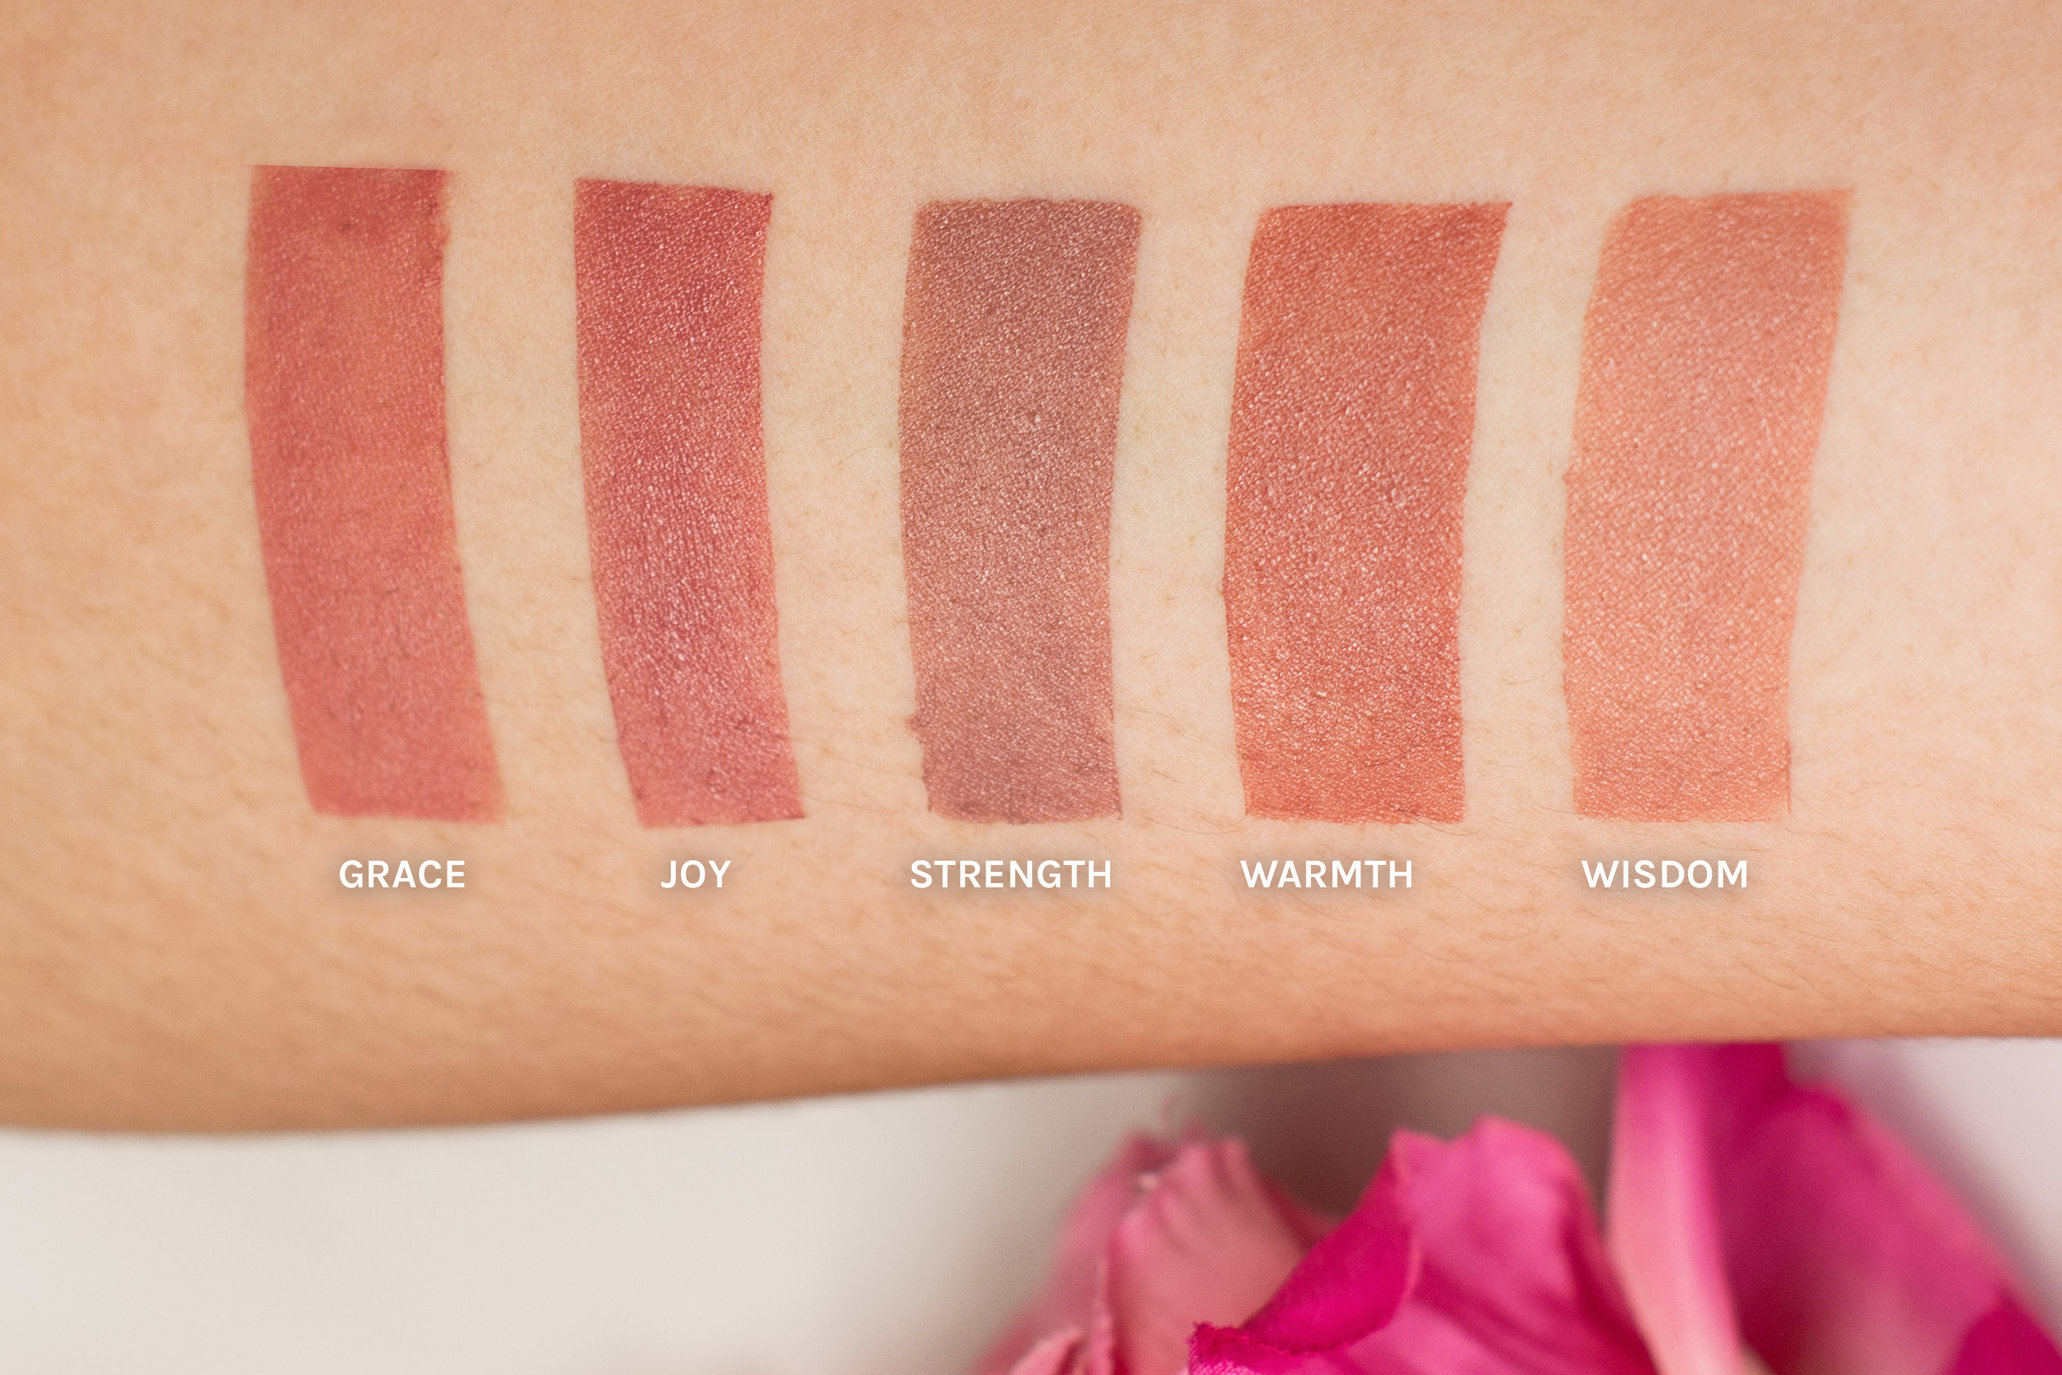 ARM-SWATCH_human-heart-nature_made-to-bloom_lipsticks_hhn_review-philippines_project-vanity_2019-2.jpg